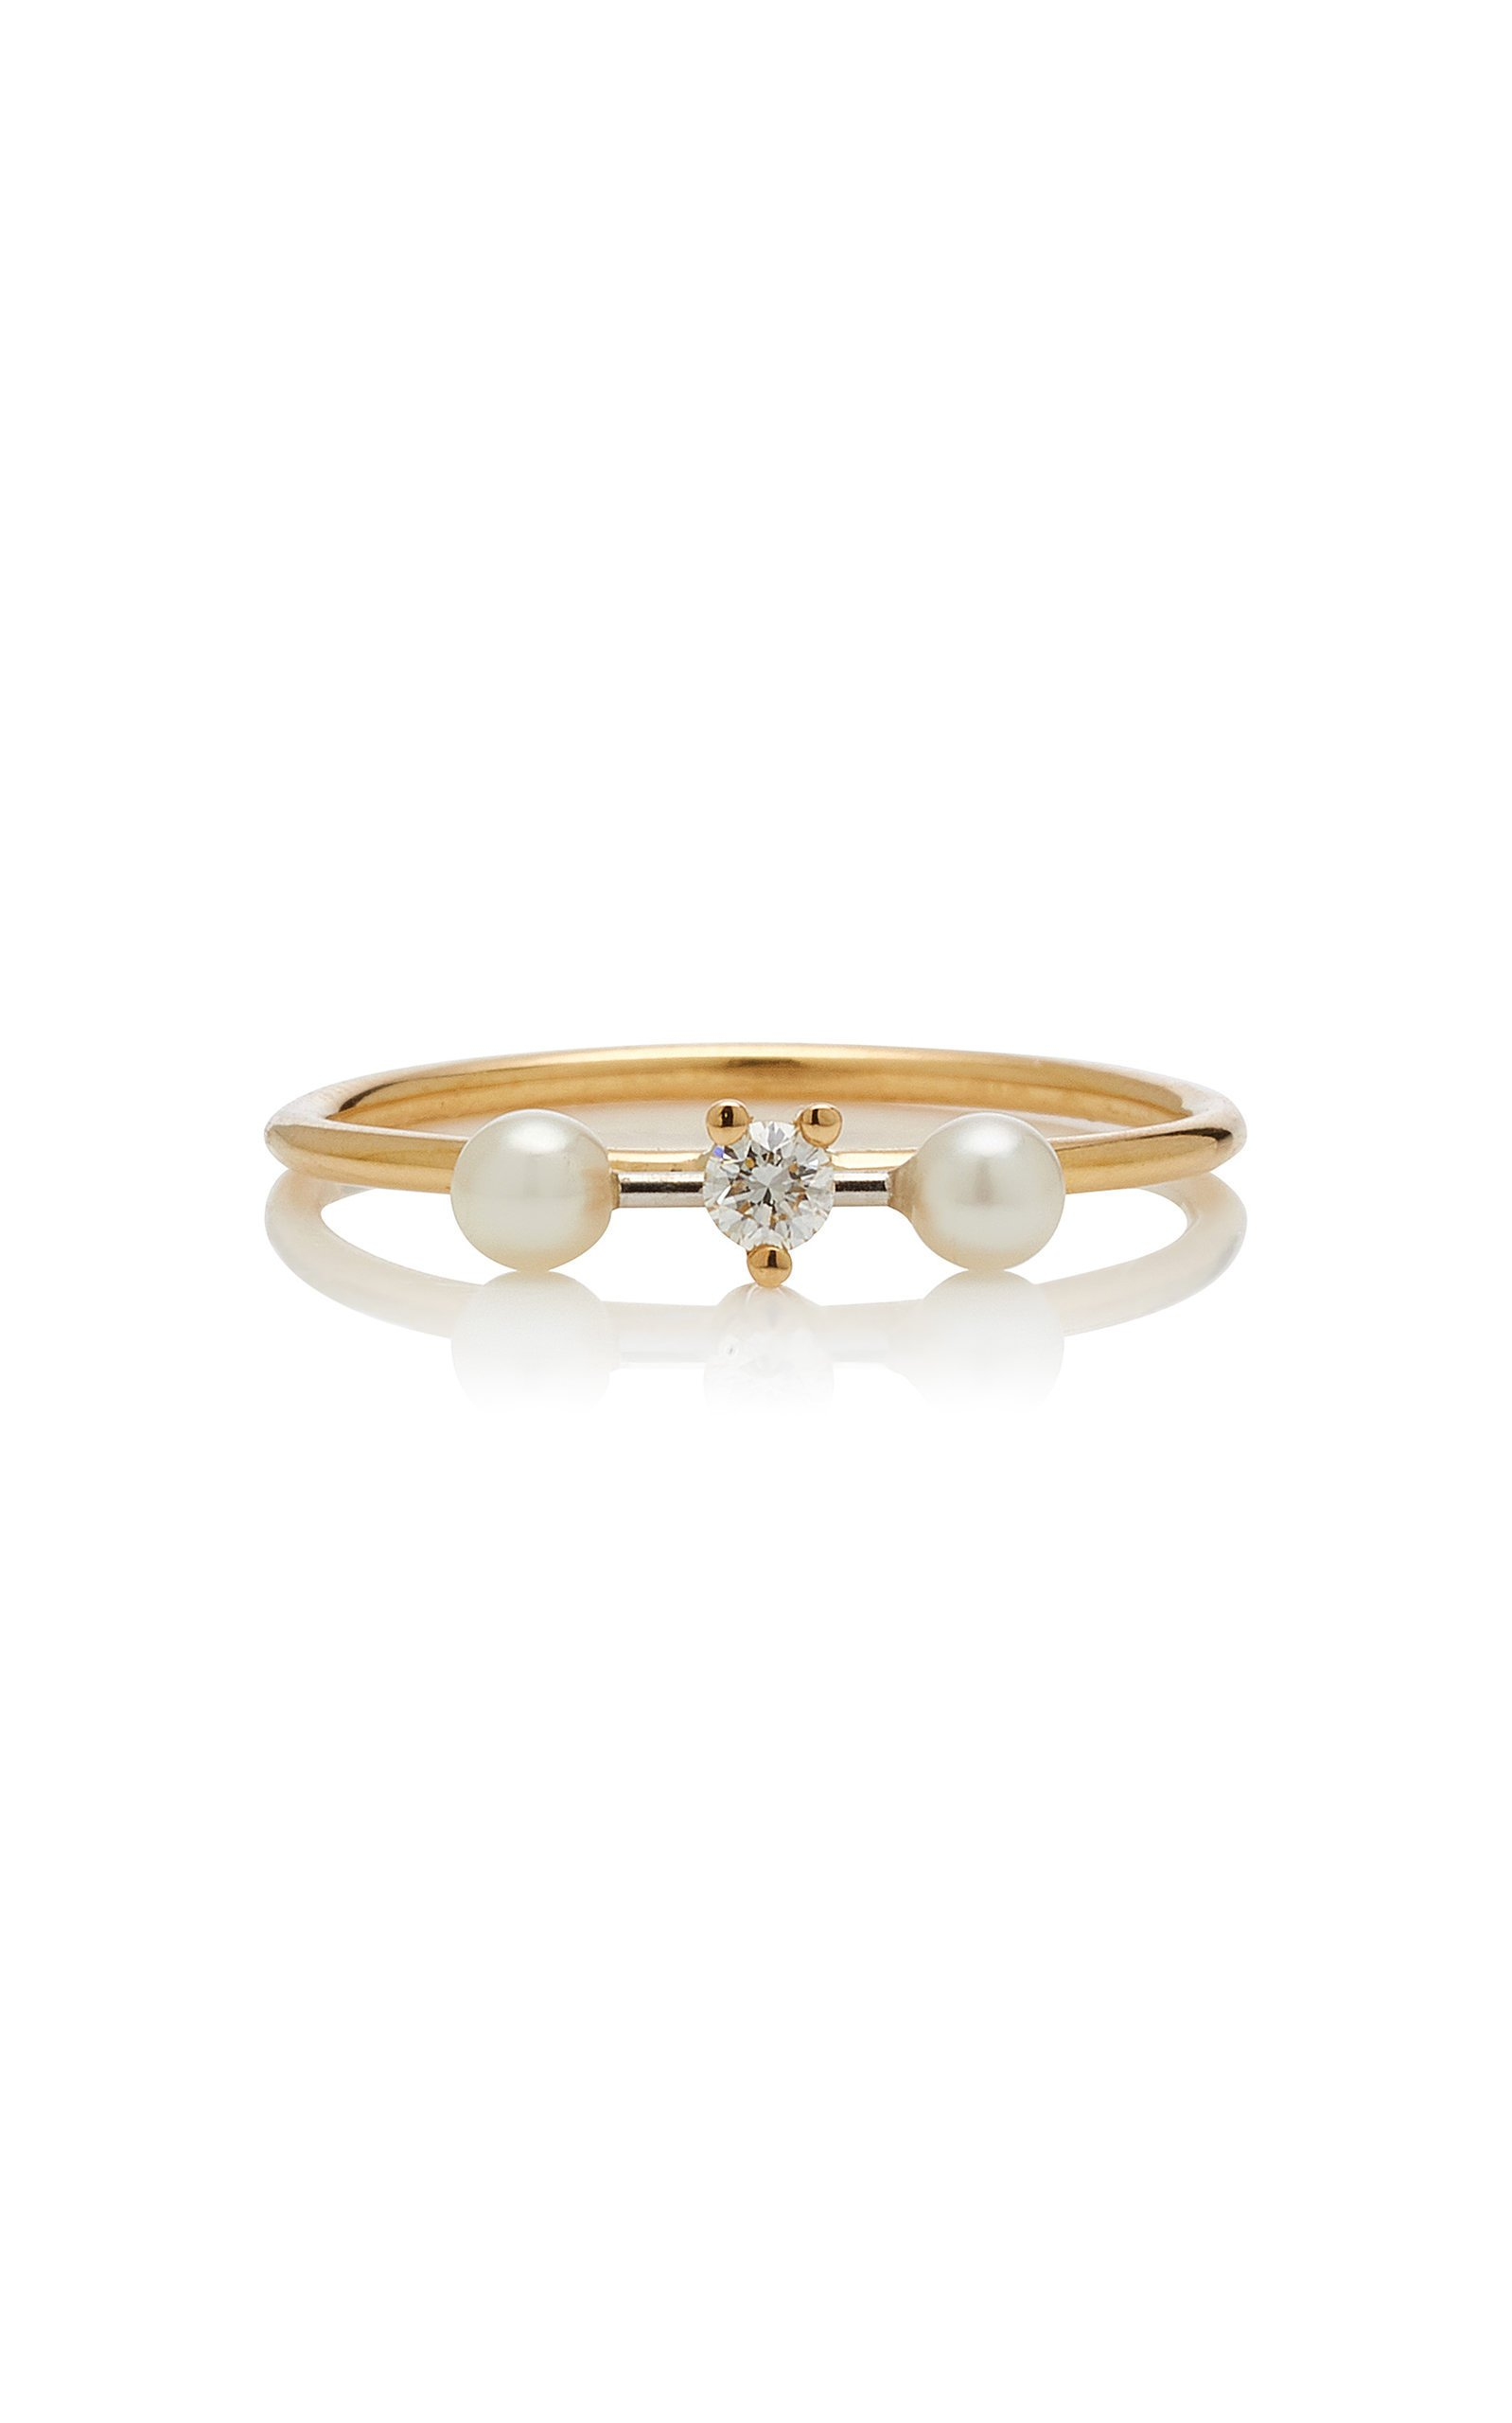 Delfina Delettrez Two-In-One 18K Gold Diamond and Pearl Ring